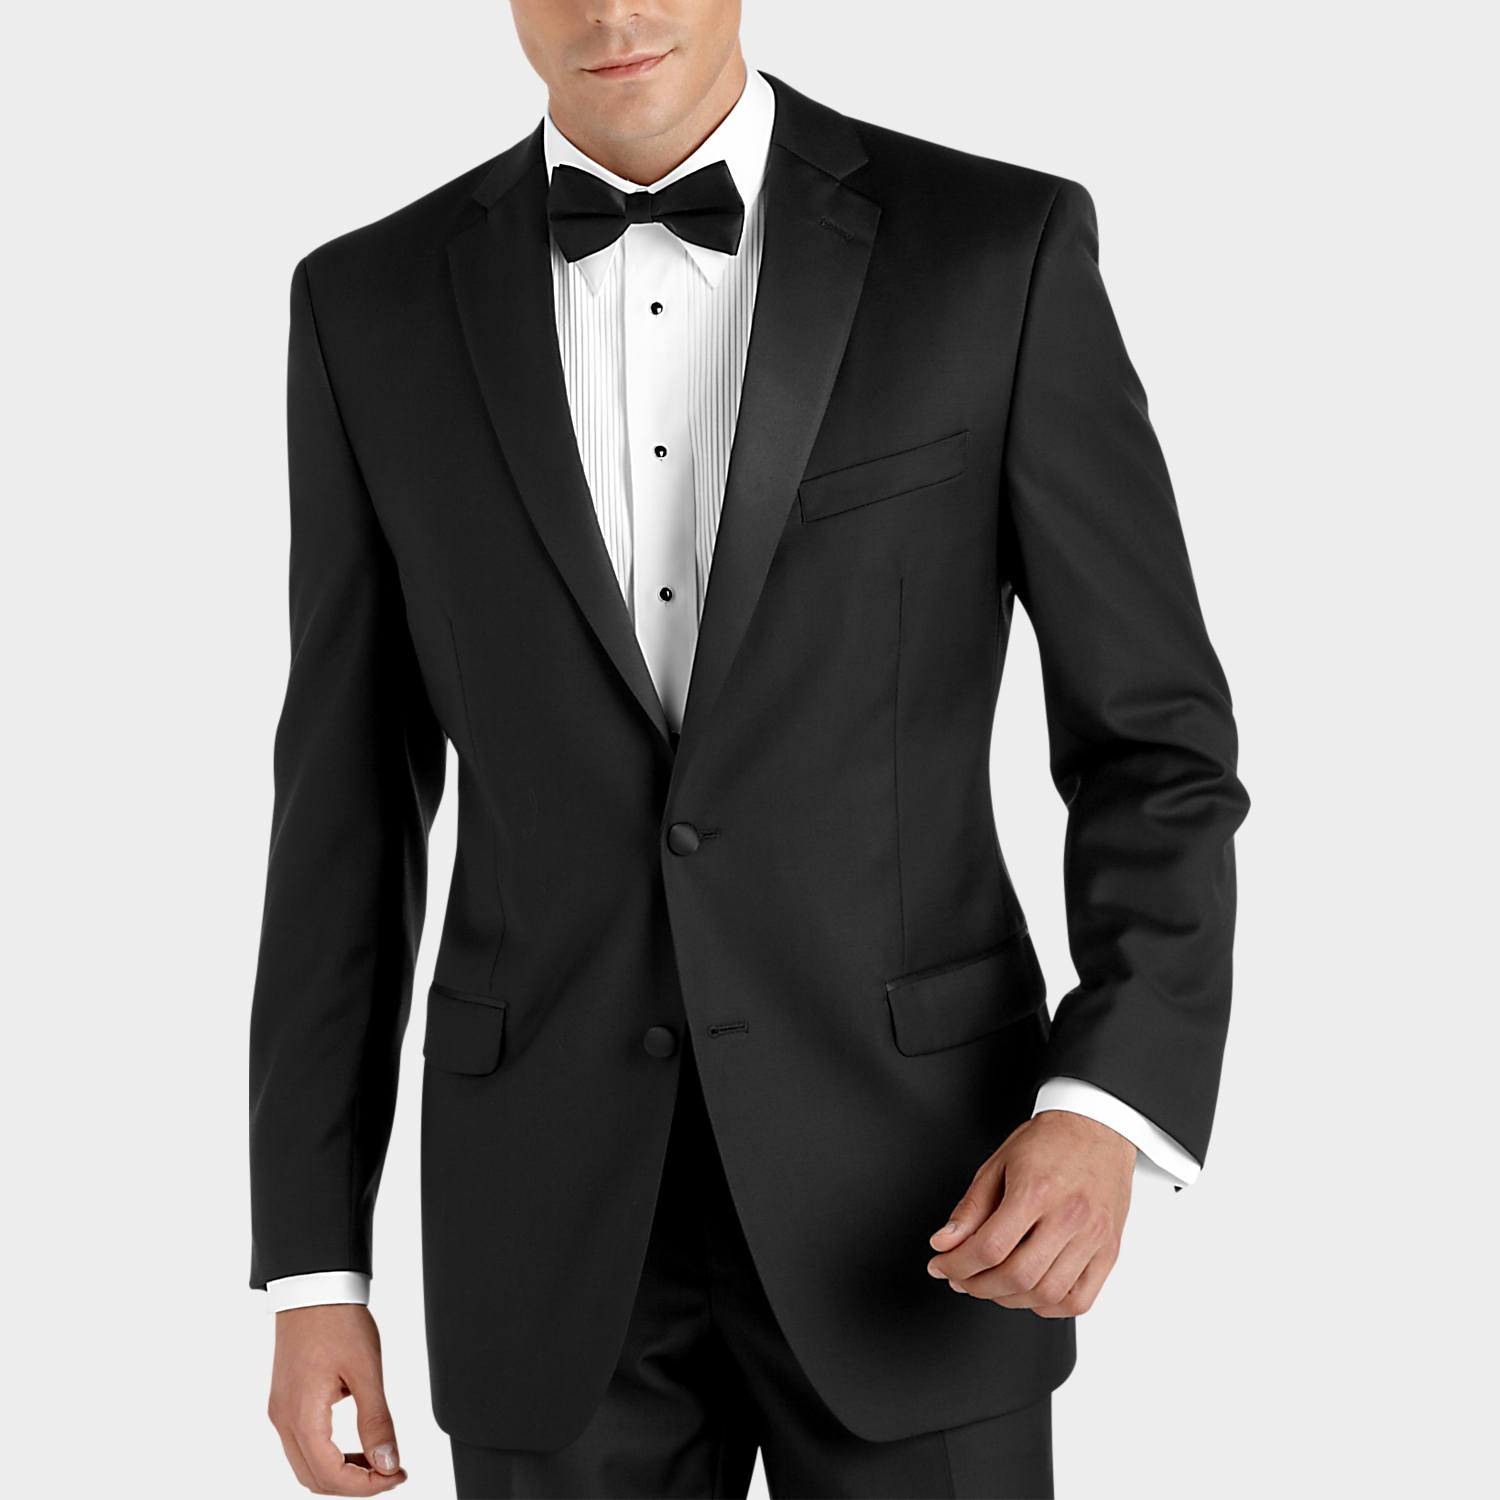 Men's Tuxedo & Black Tie Tuxes - Shop Formal Suits | Men's Wearhouse